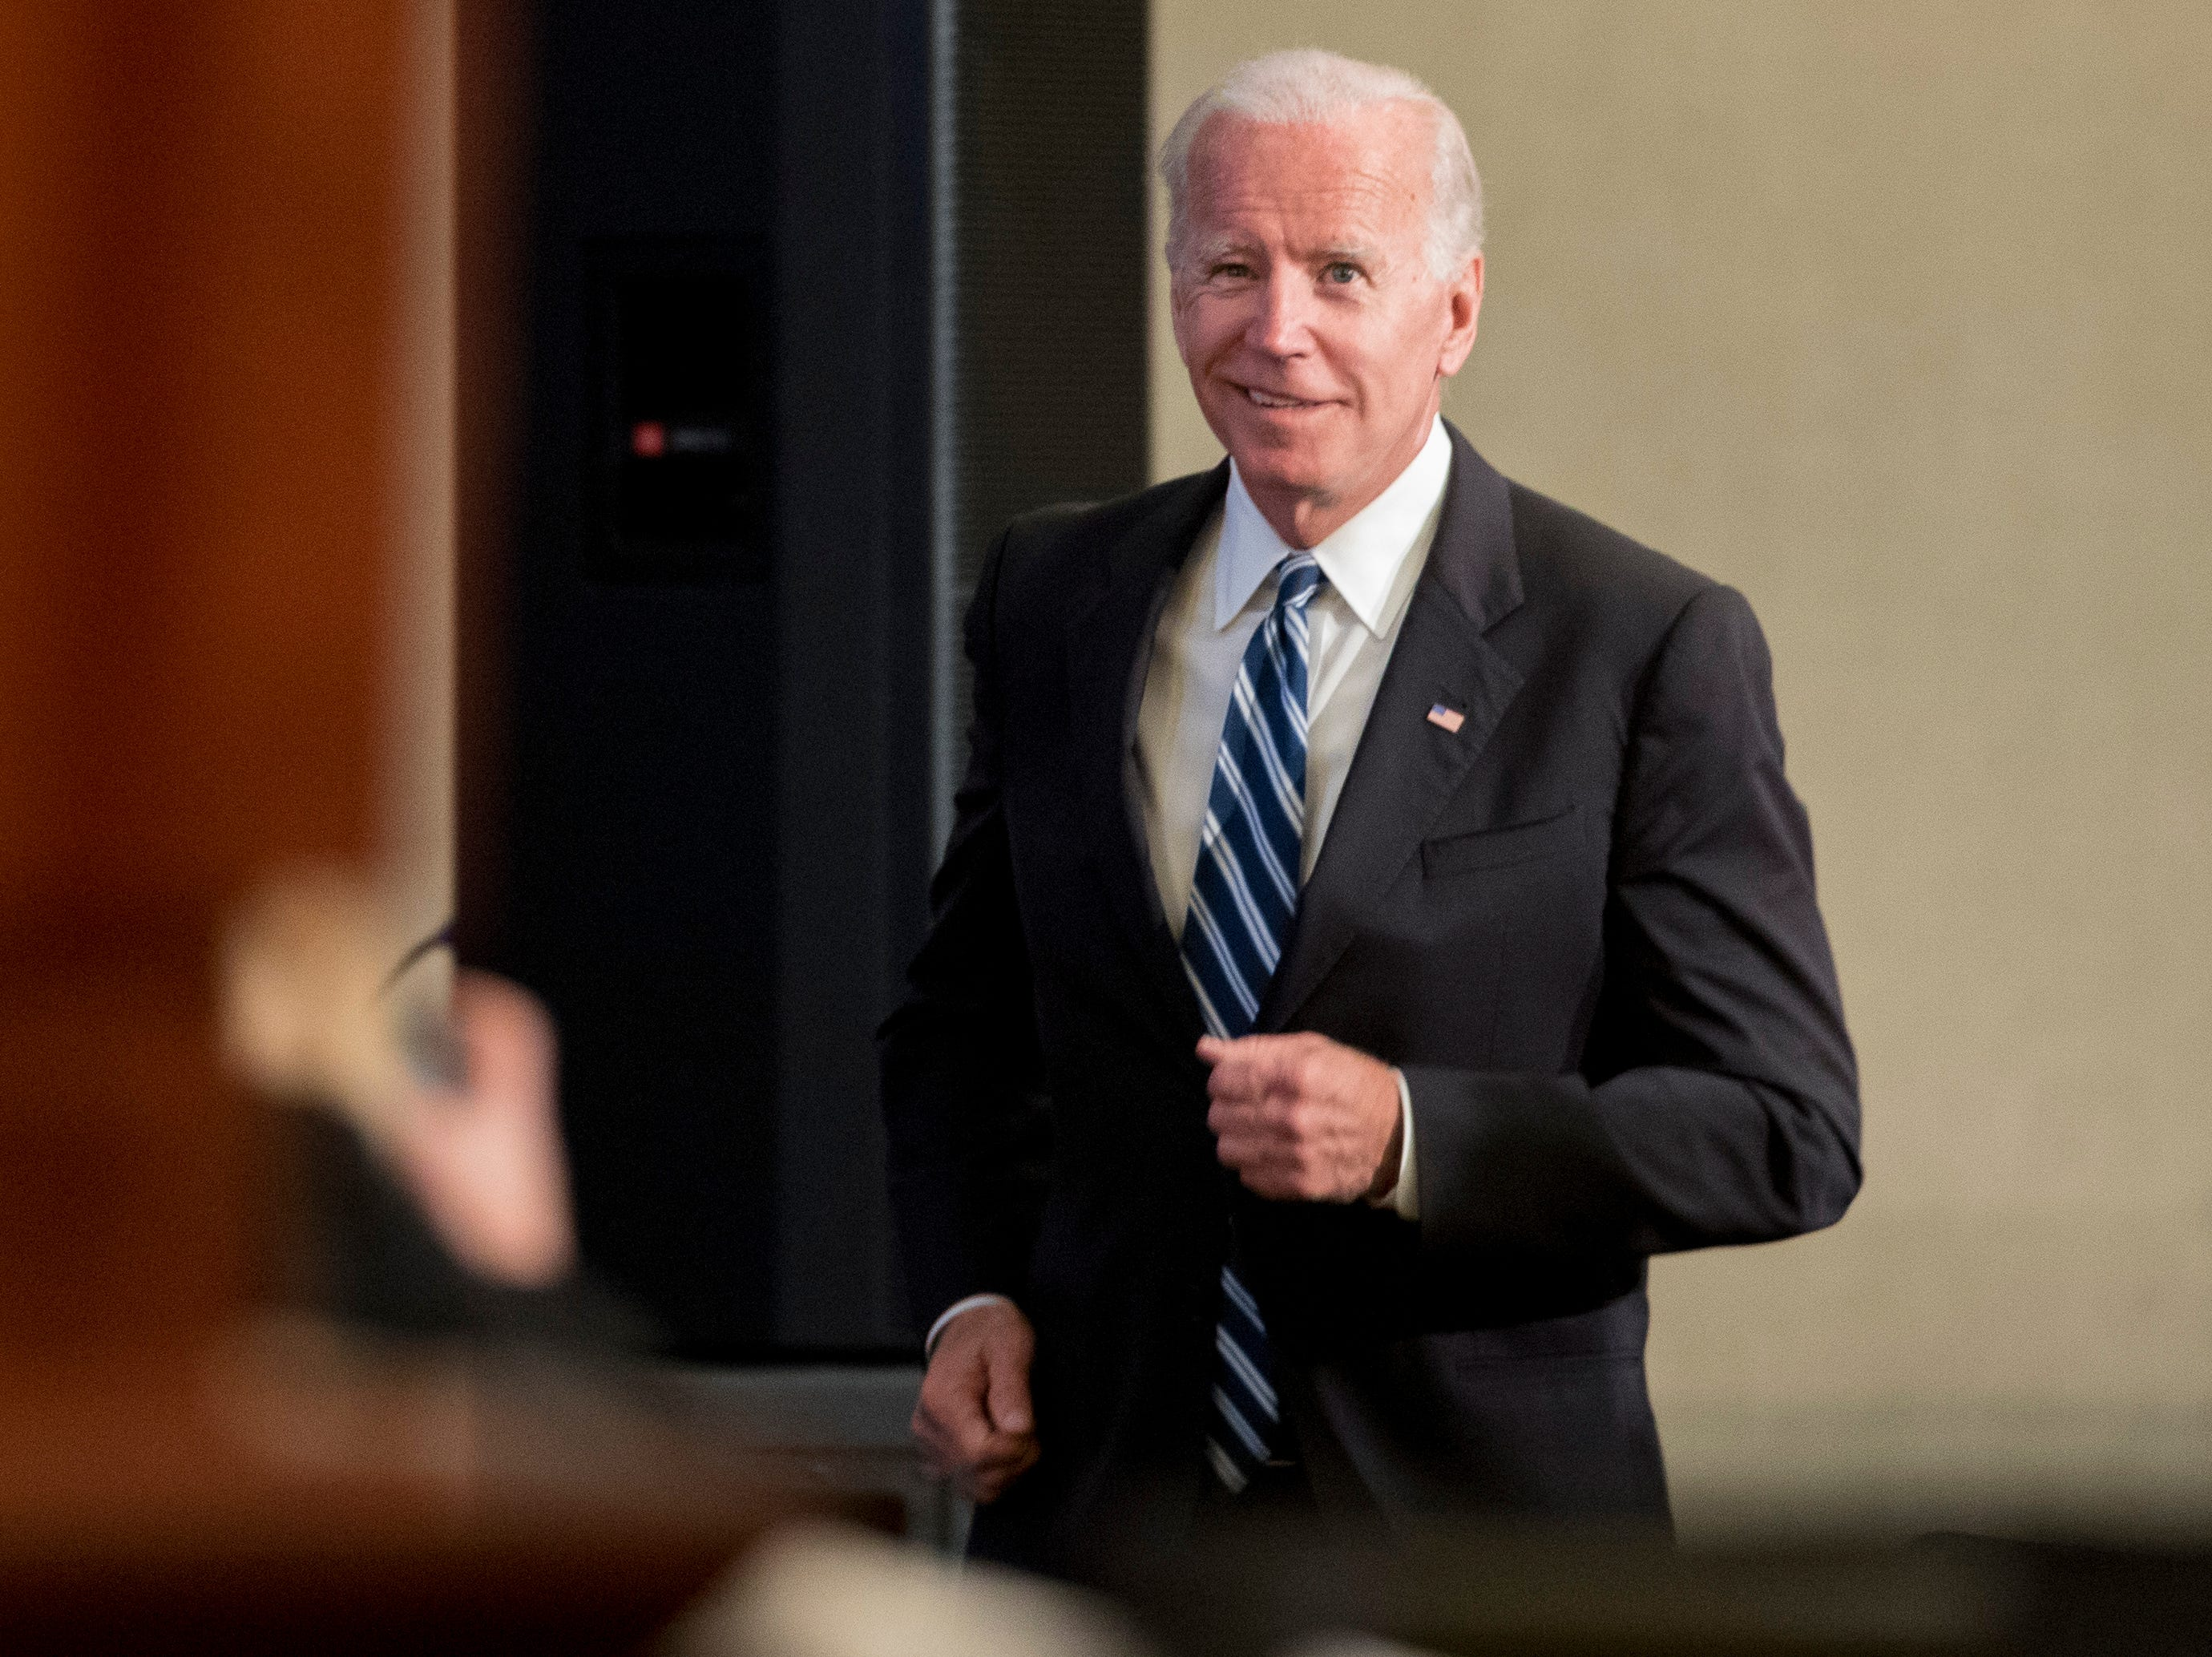 Former Vice President Joe Biden takes the stage to speak to the International Association of Firefighters at the Hyatt Regency on Capitol Hill in Washington, Tuesday, March 12, 2019, amid growing expectations he'll soon announce he's running for president.